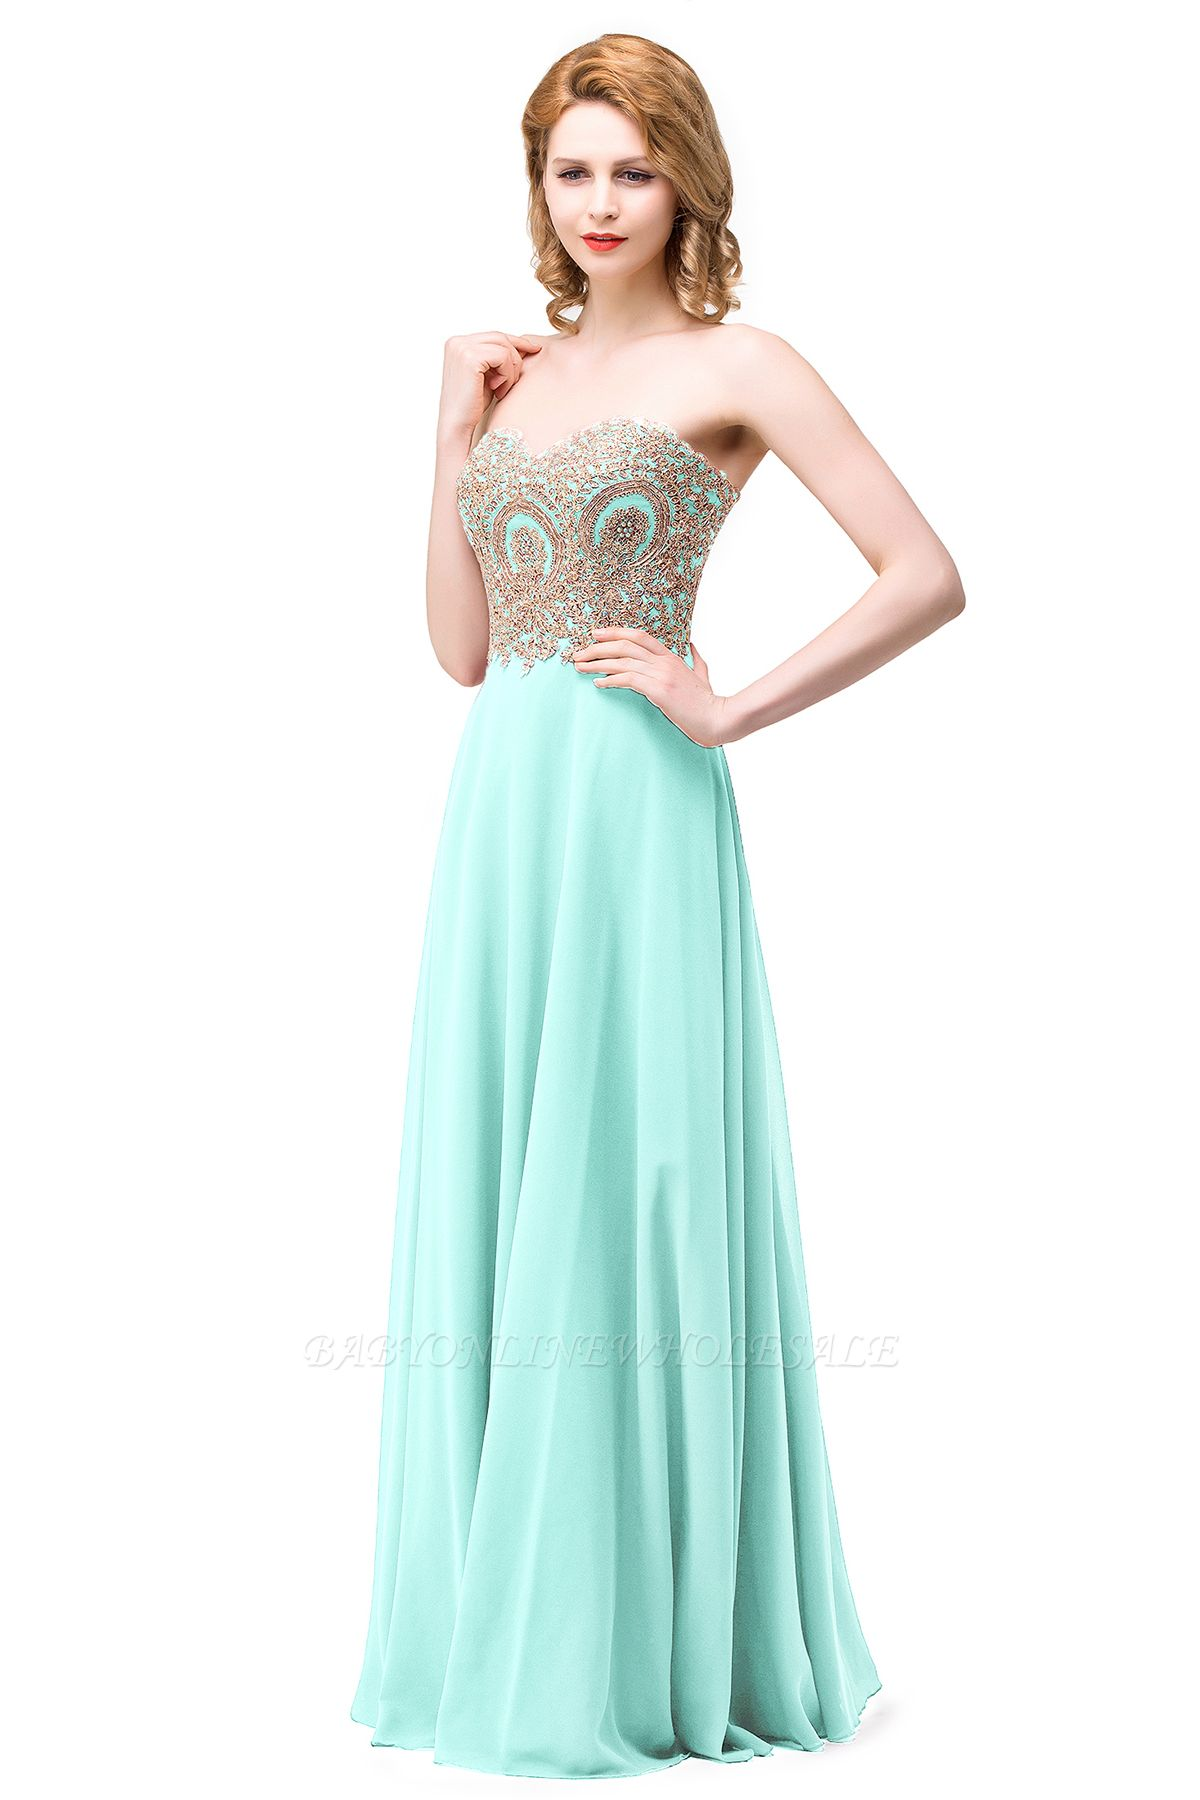 ERICA | A-Line Sweetheart Floor-Length Prom Dresses with Embroidery Beads